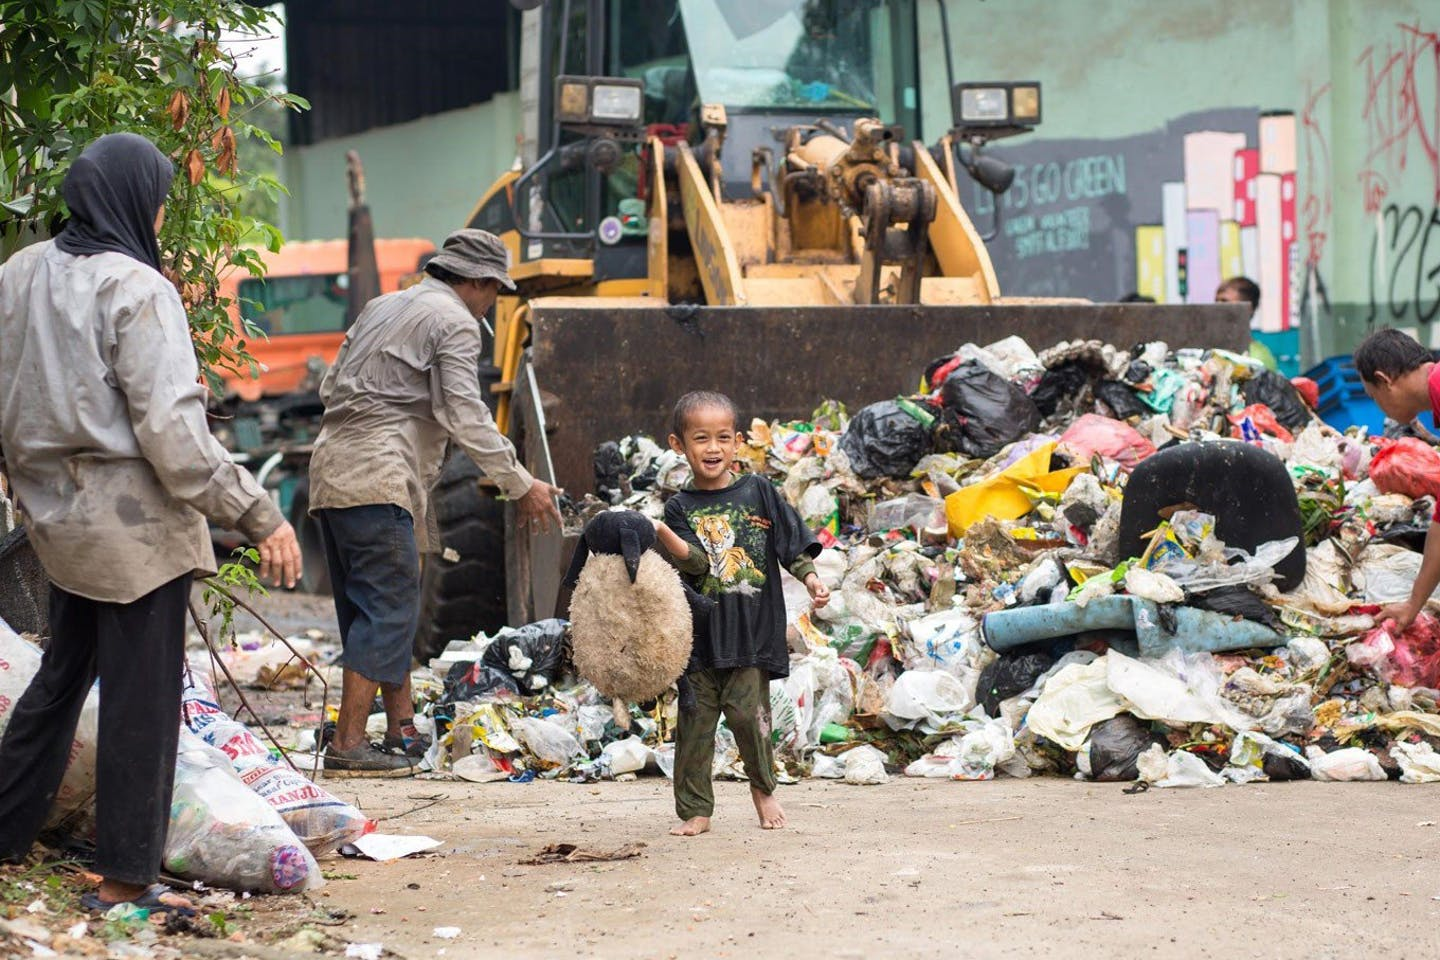 A child finds a teddy bear in a waste bank in Depok, West Java.